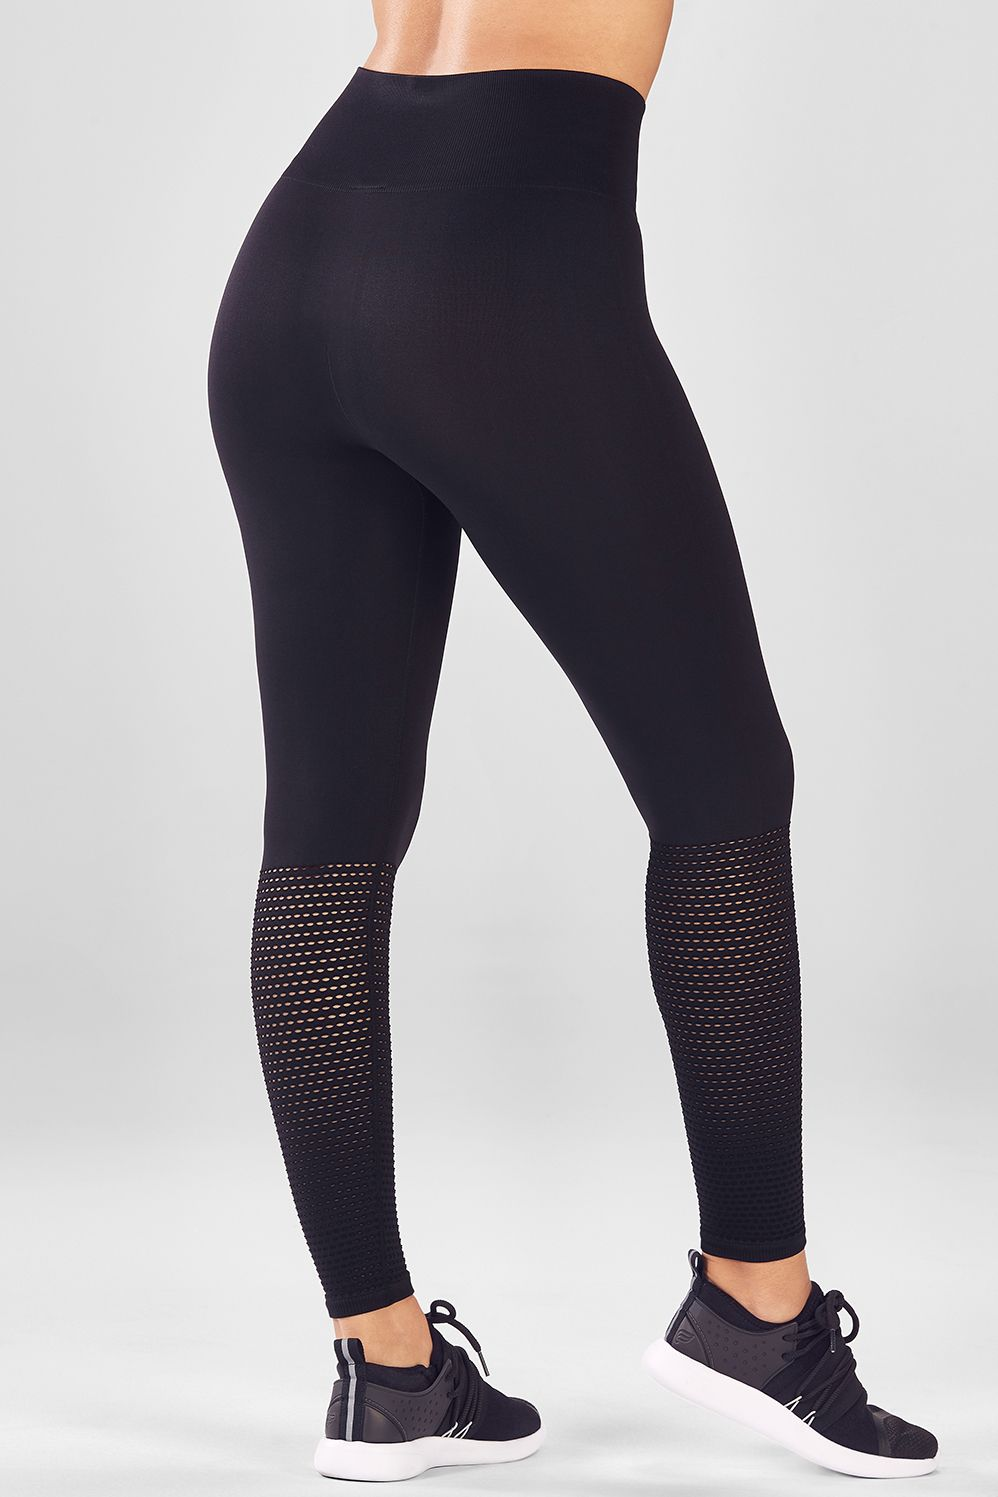 cef2afe26a8288 Seamless High-Waisted Mesh Legging | Products | Seamless leggings ...